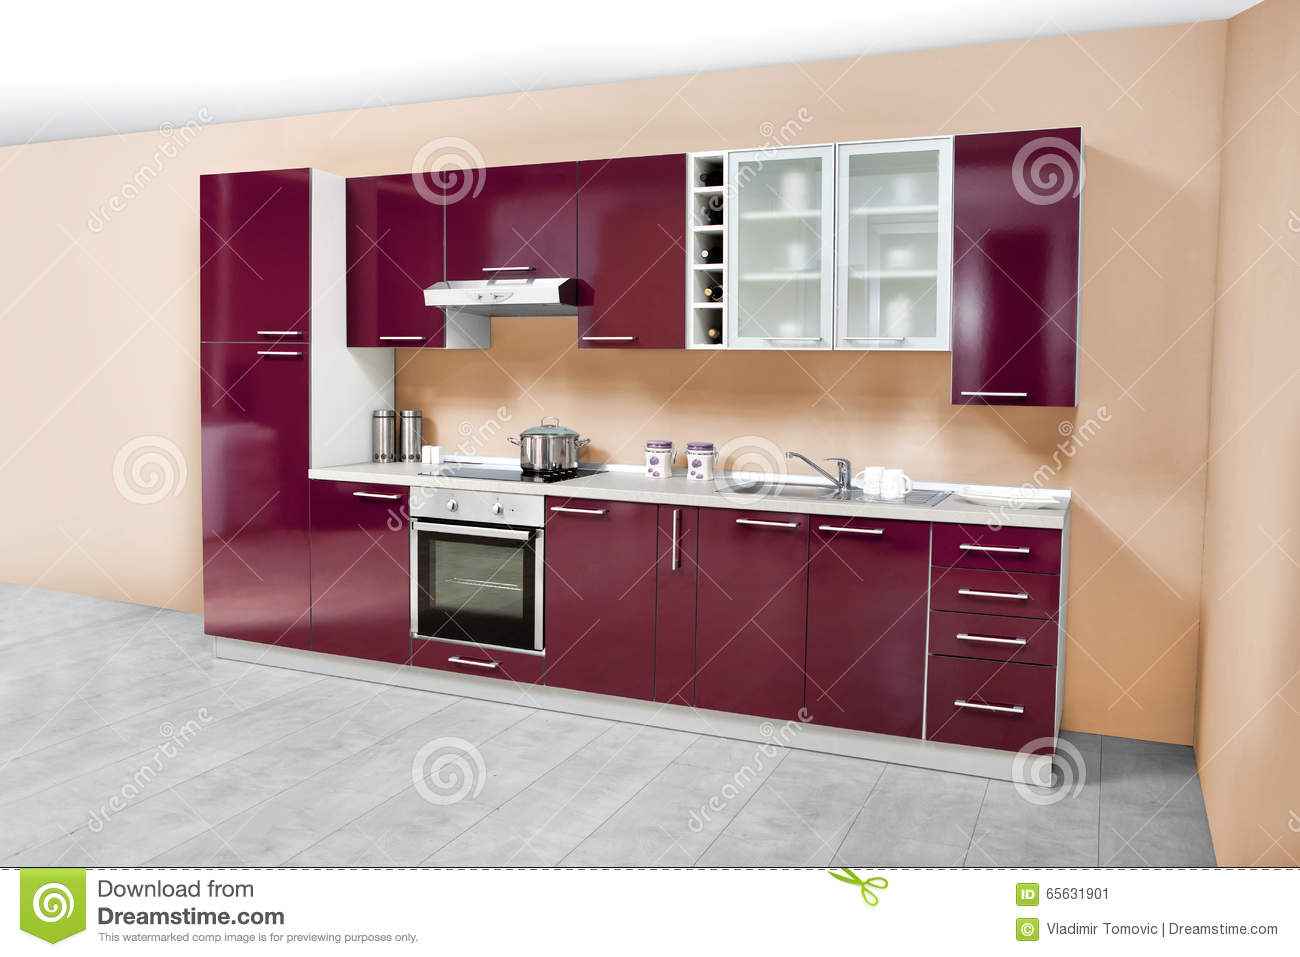 Meuble De Cuisine Violet modern kitchen, wooden furniture, simple and clean stock